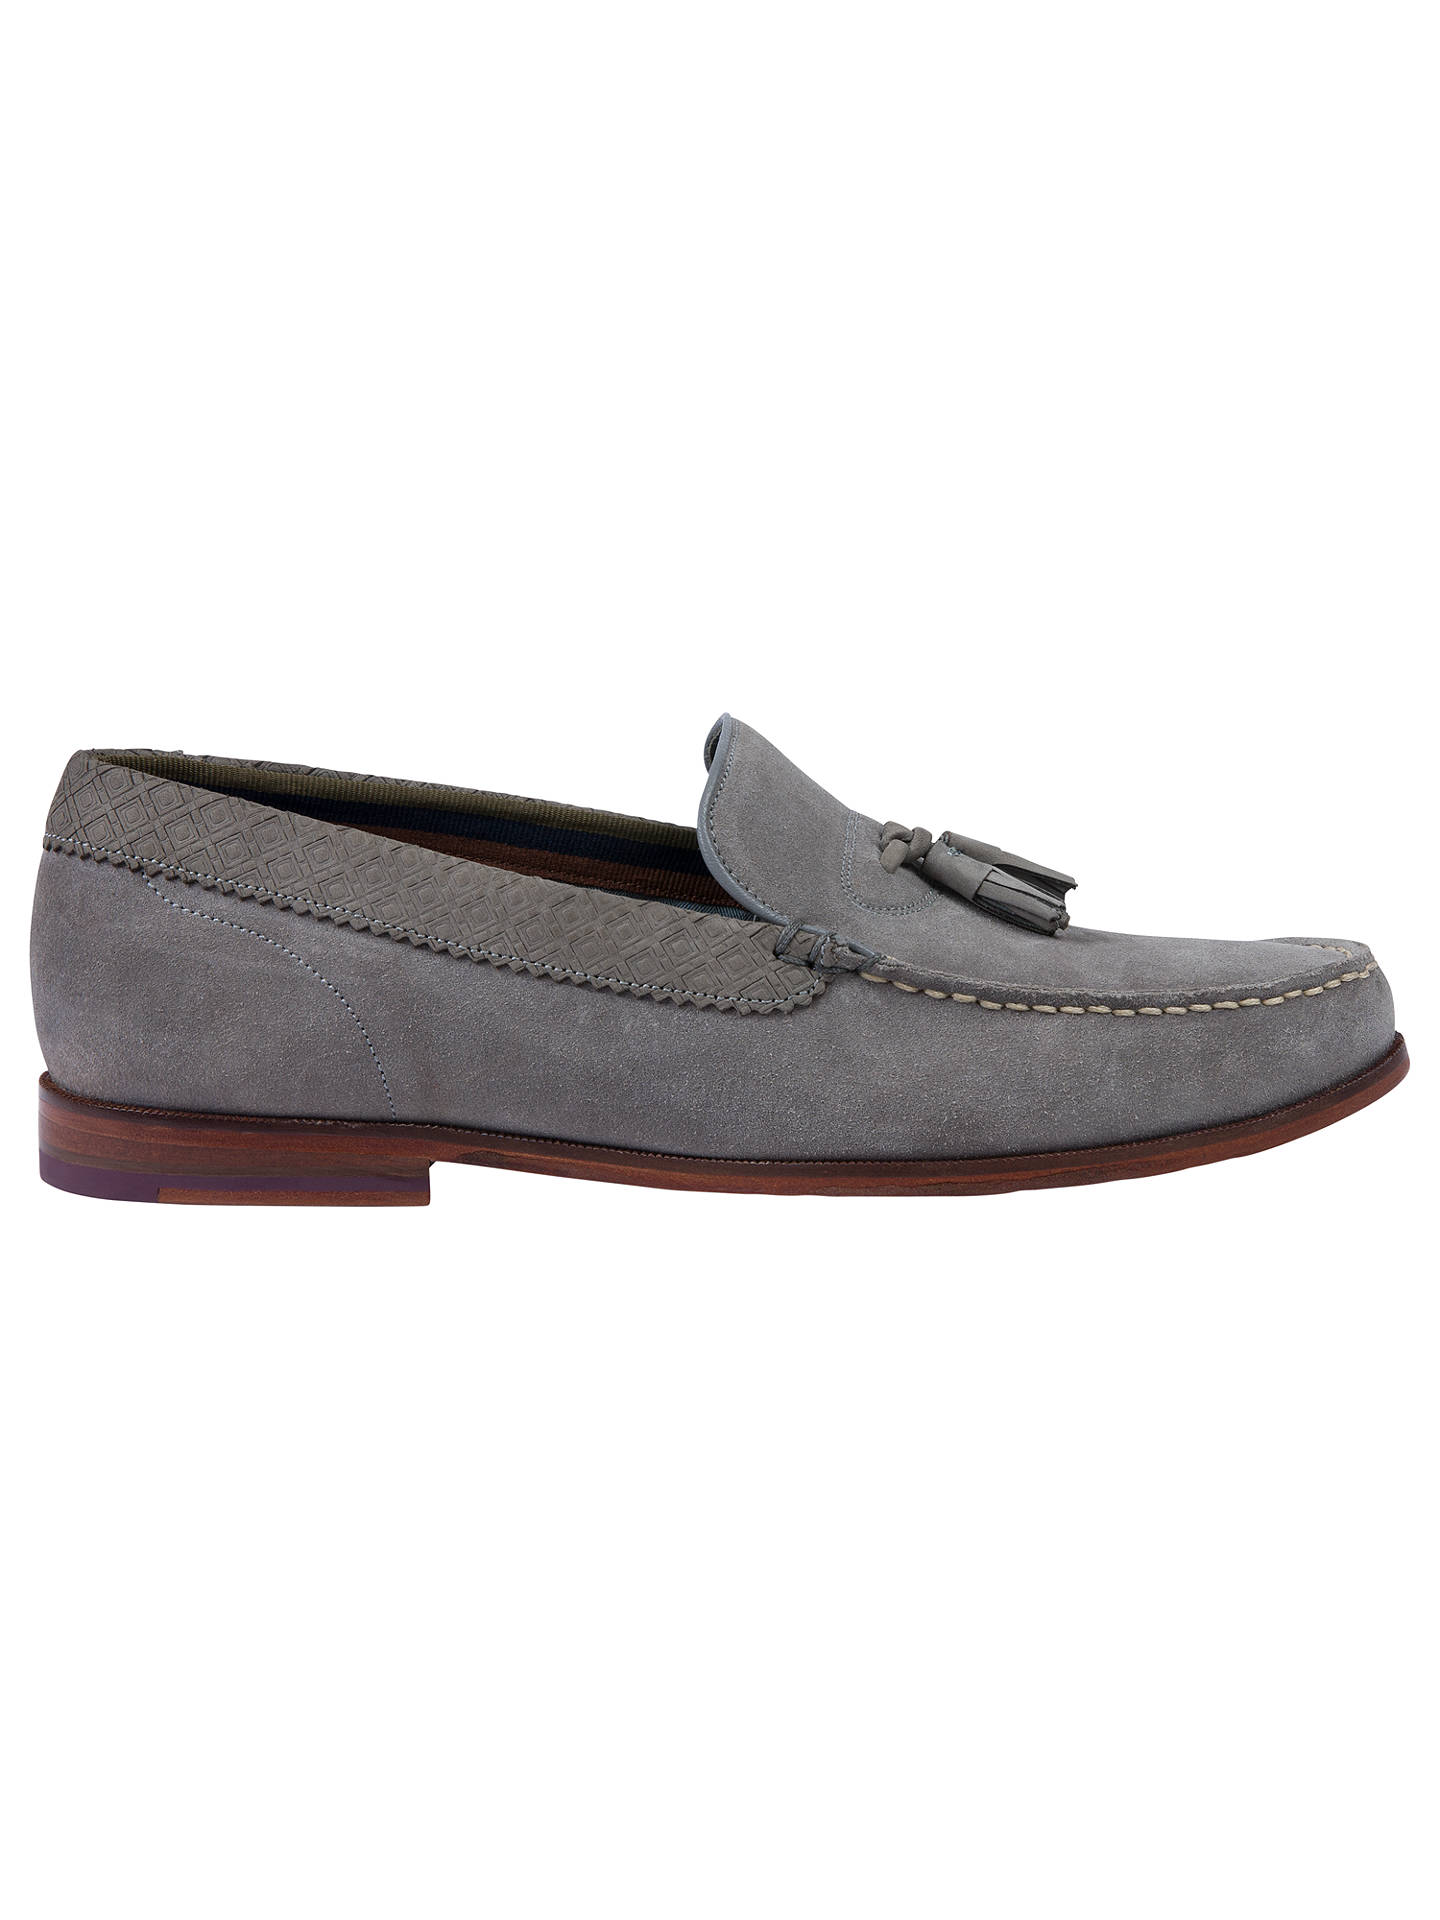 98bd6c862eb Ted Baker Dougge Suede Tassel Loafers at John Lewis   Partners